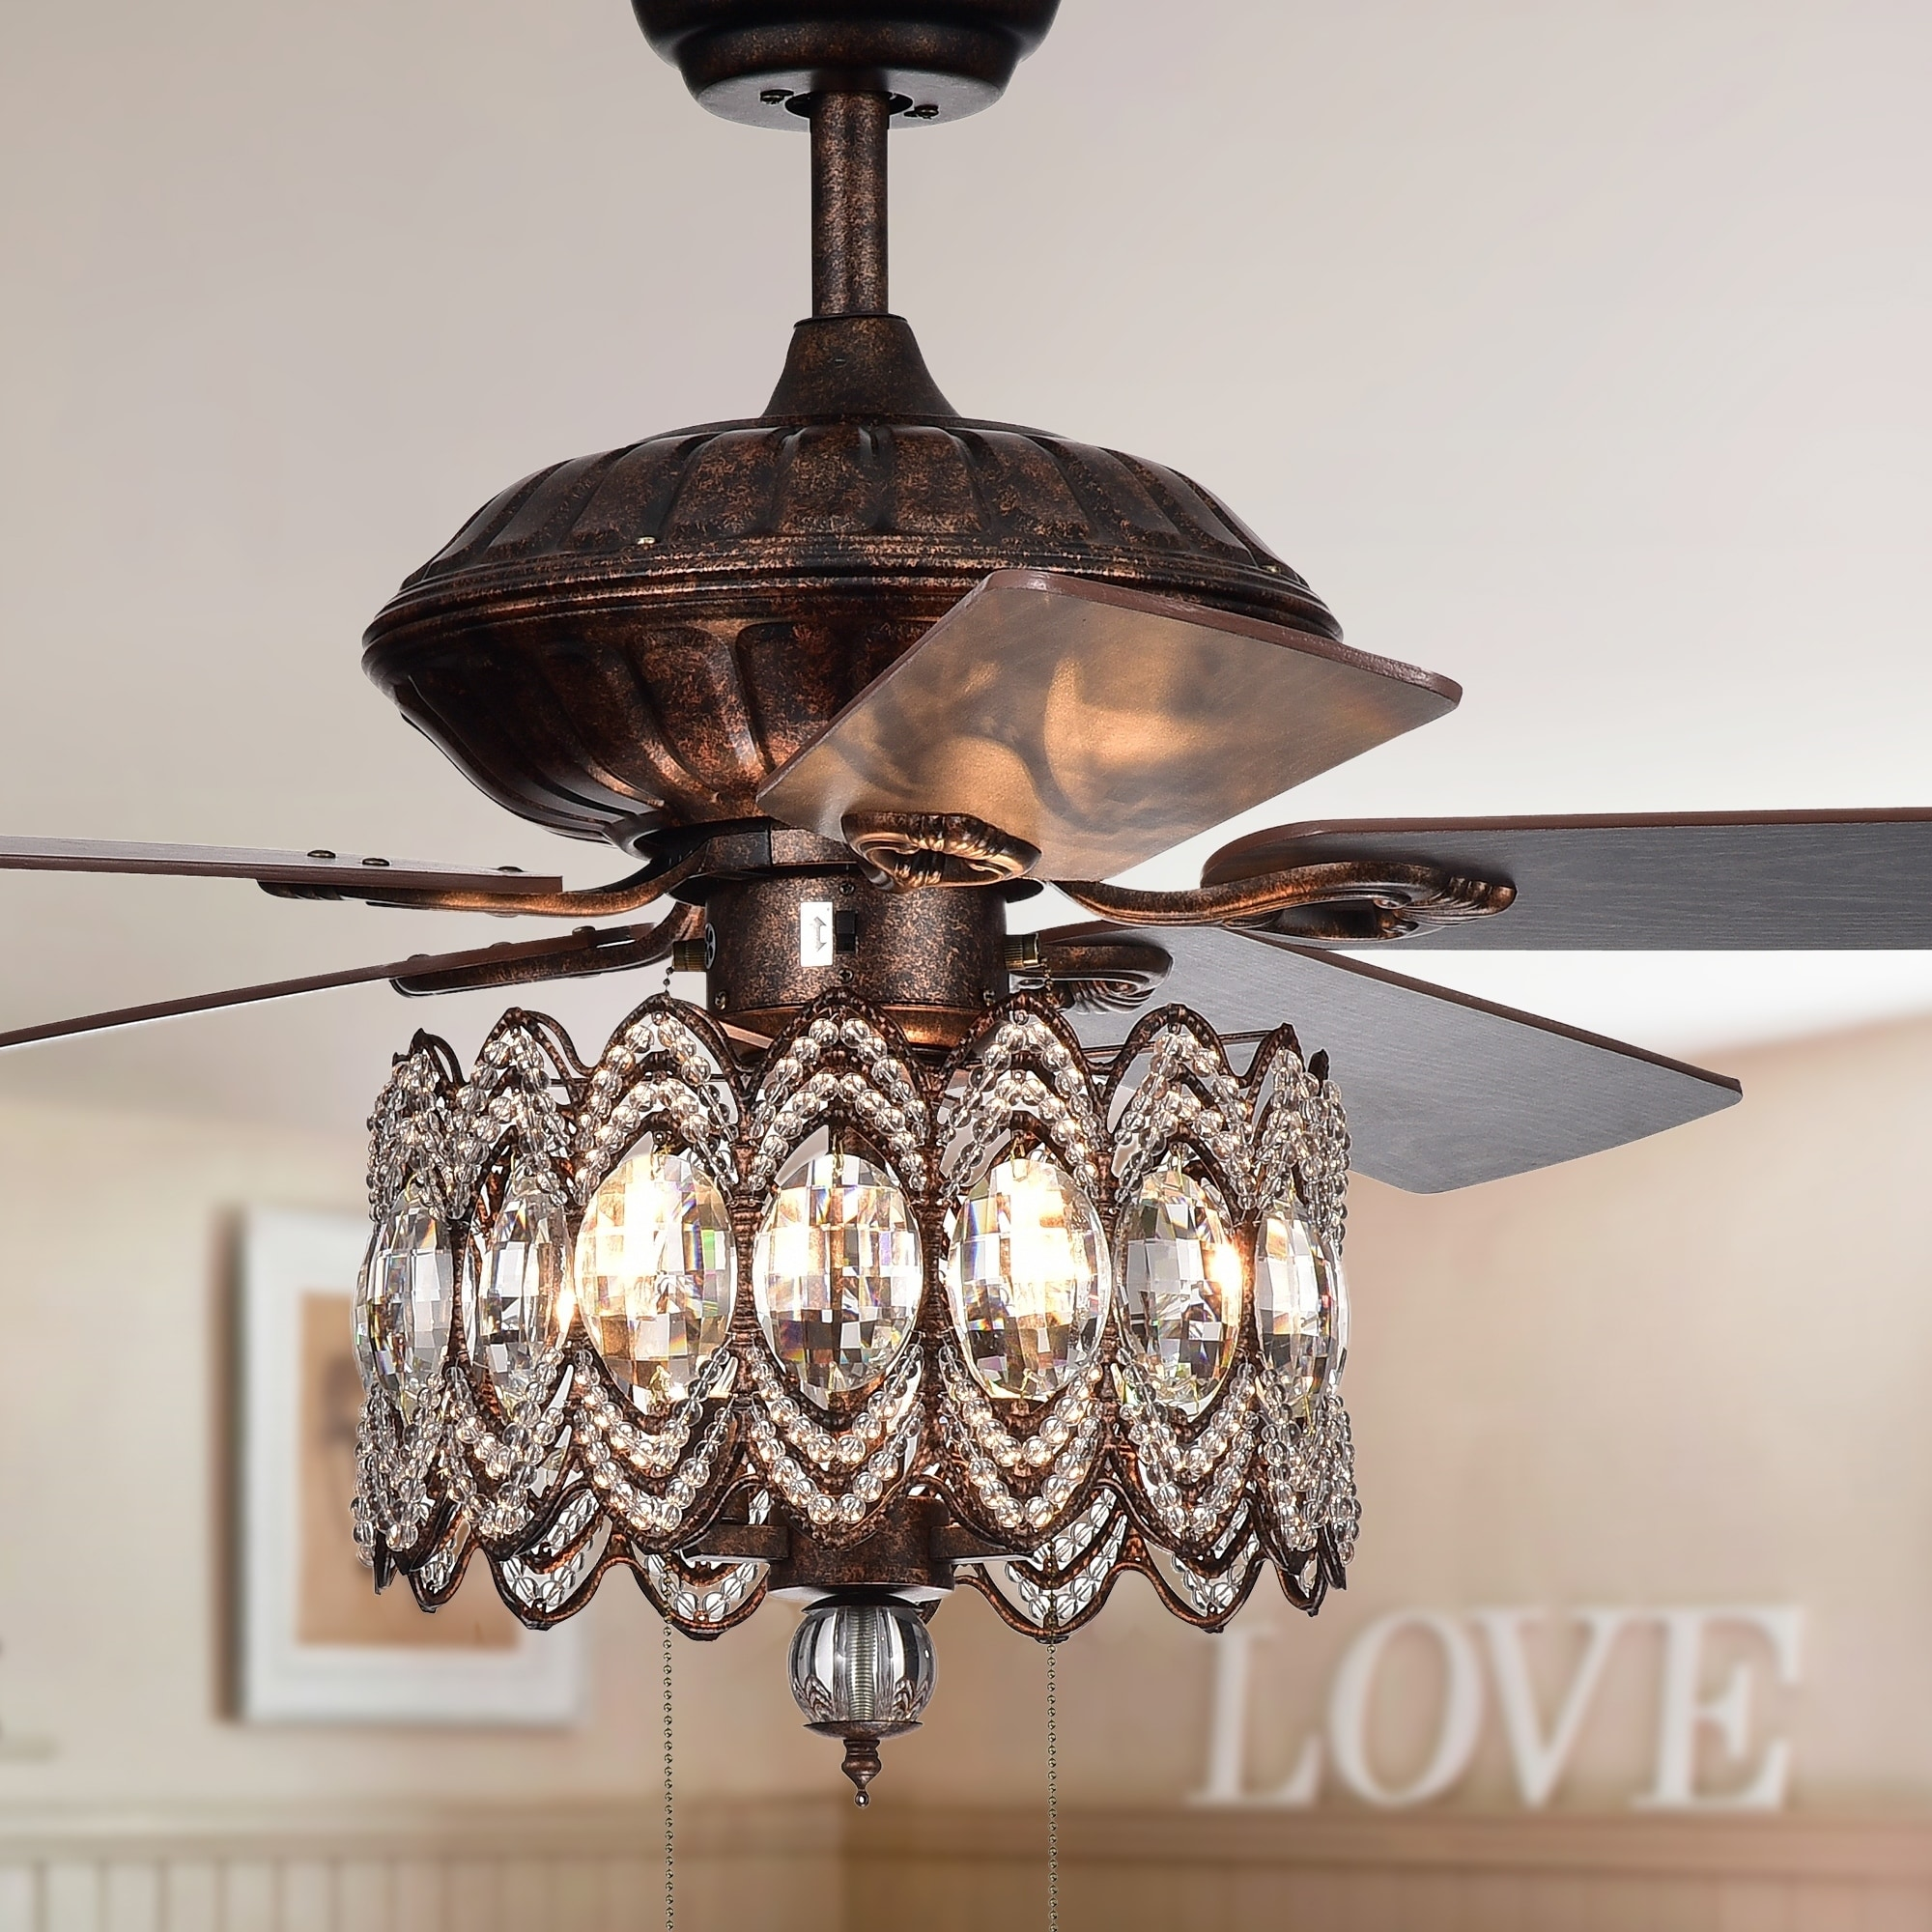 Rustic Ceiling Fan Light Fixtures Copper Grove Dejes 52 In Rustic Bronze Chandelier Ceiling Fan With Crystal Shade